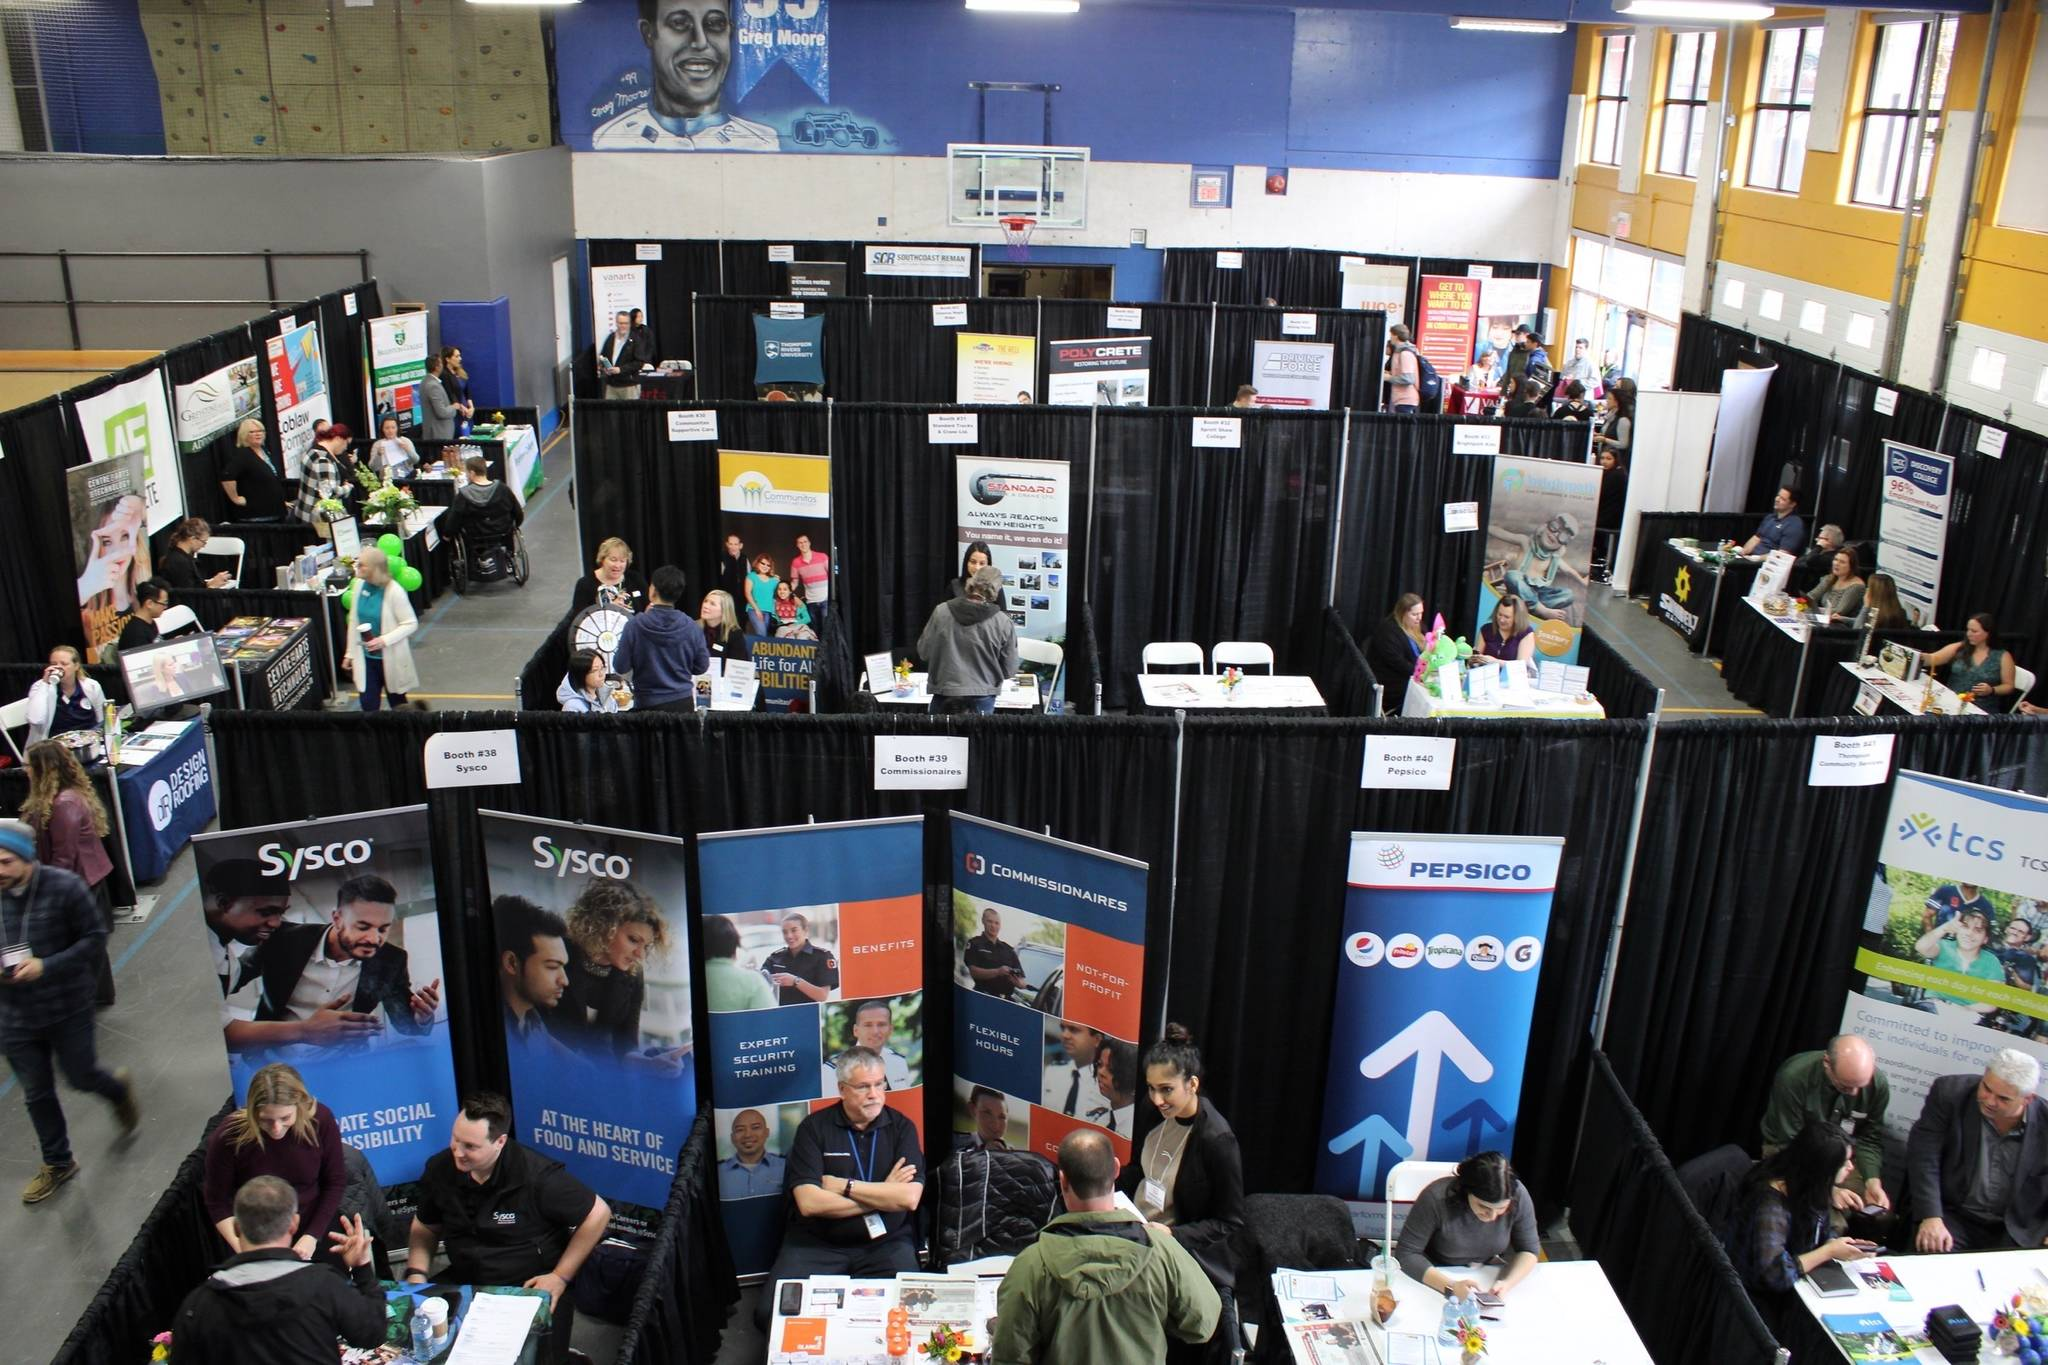 Stop by the Greg Moore Youth Centre from 11 a.m. to 4 p.m. to find your dream job (Photo by Kieran O'Connor/Black Press Media).